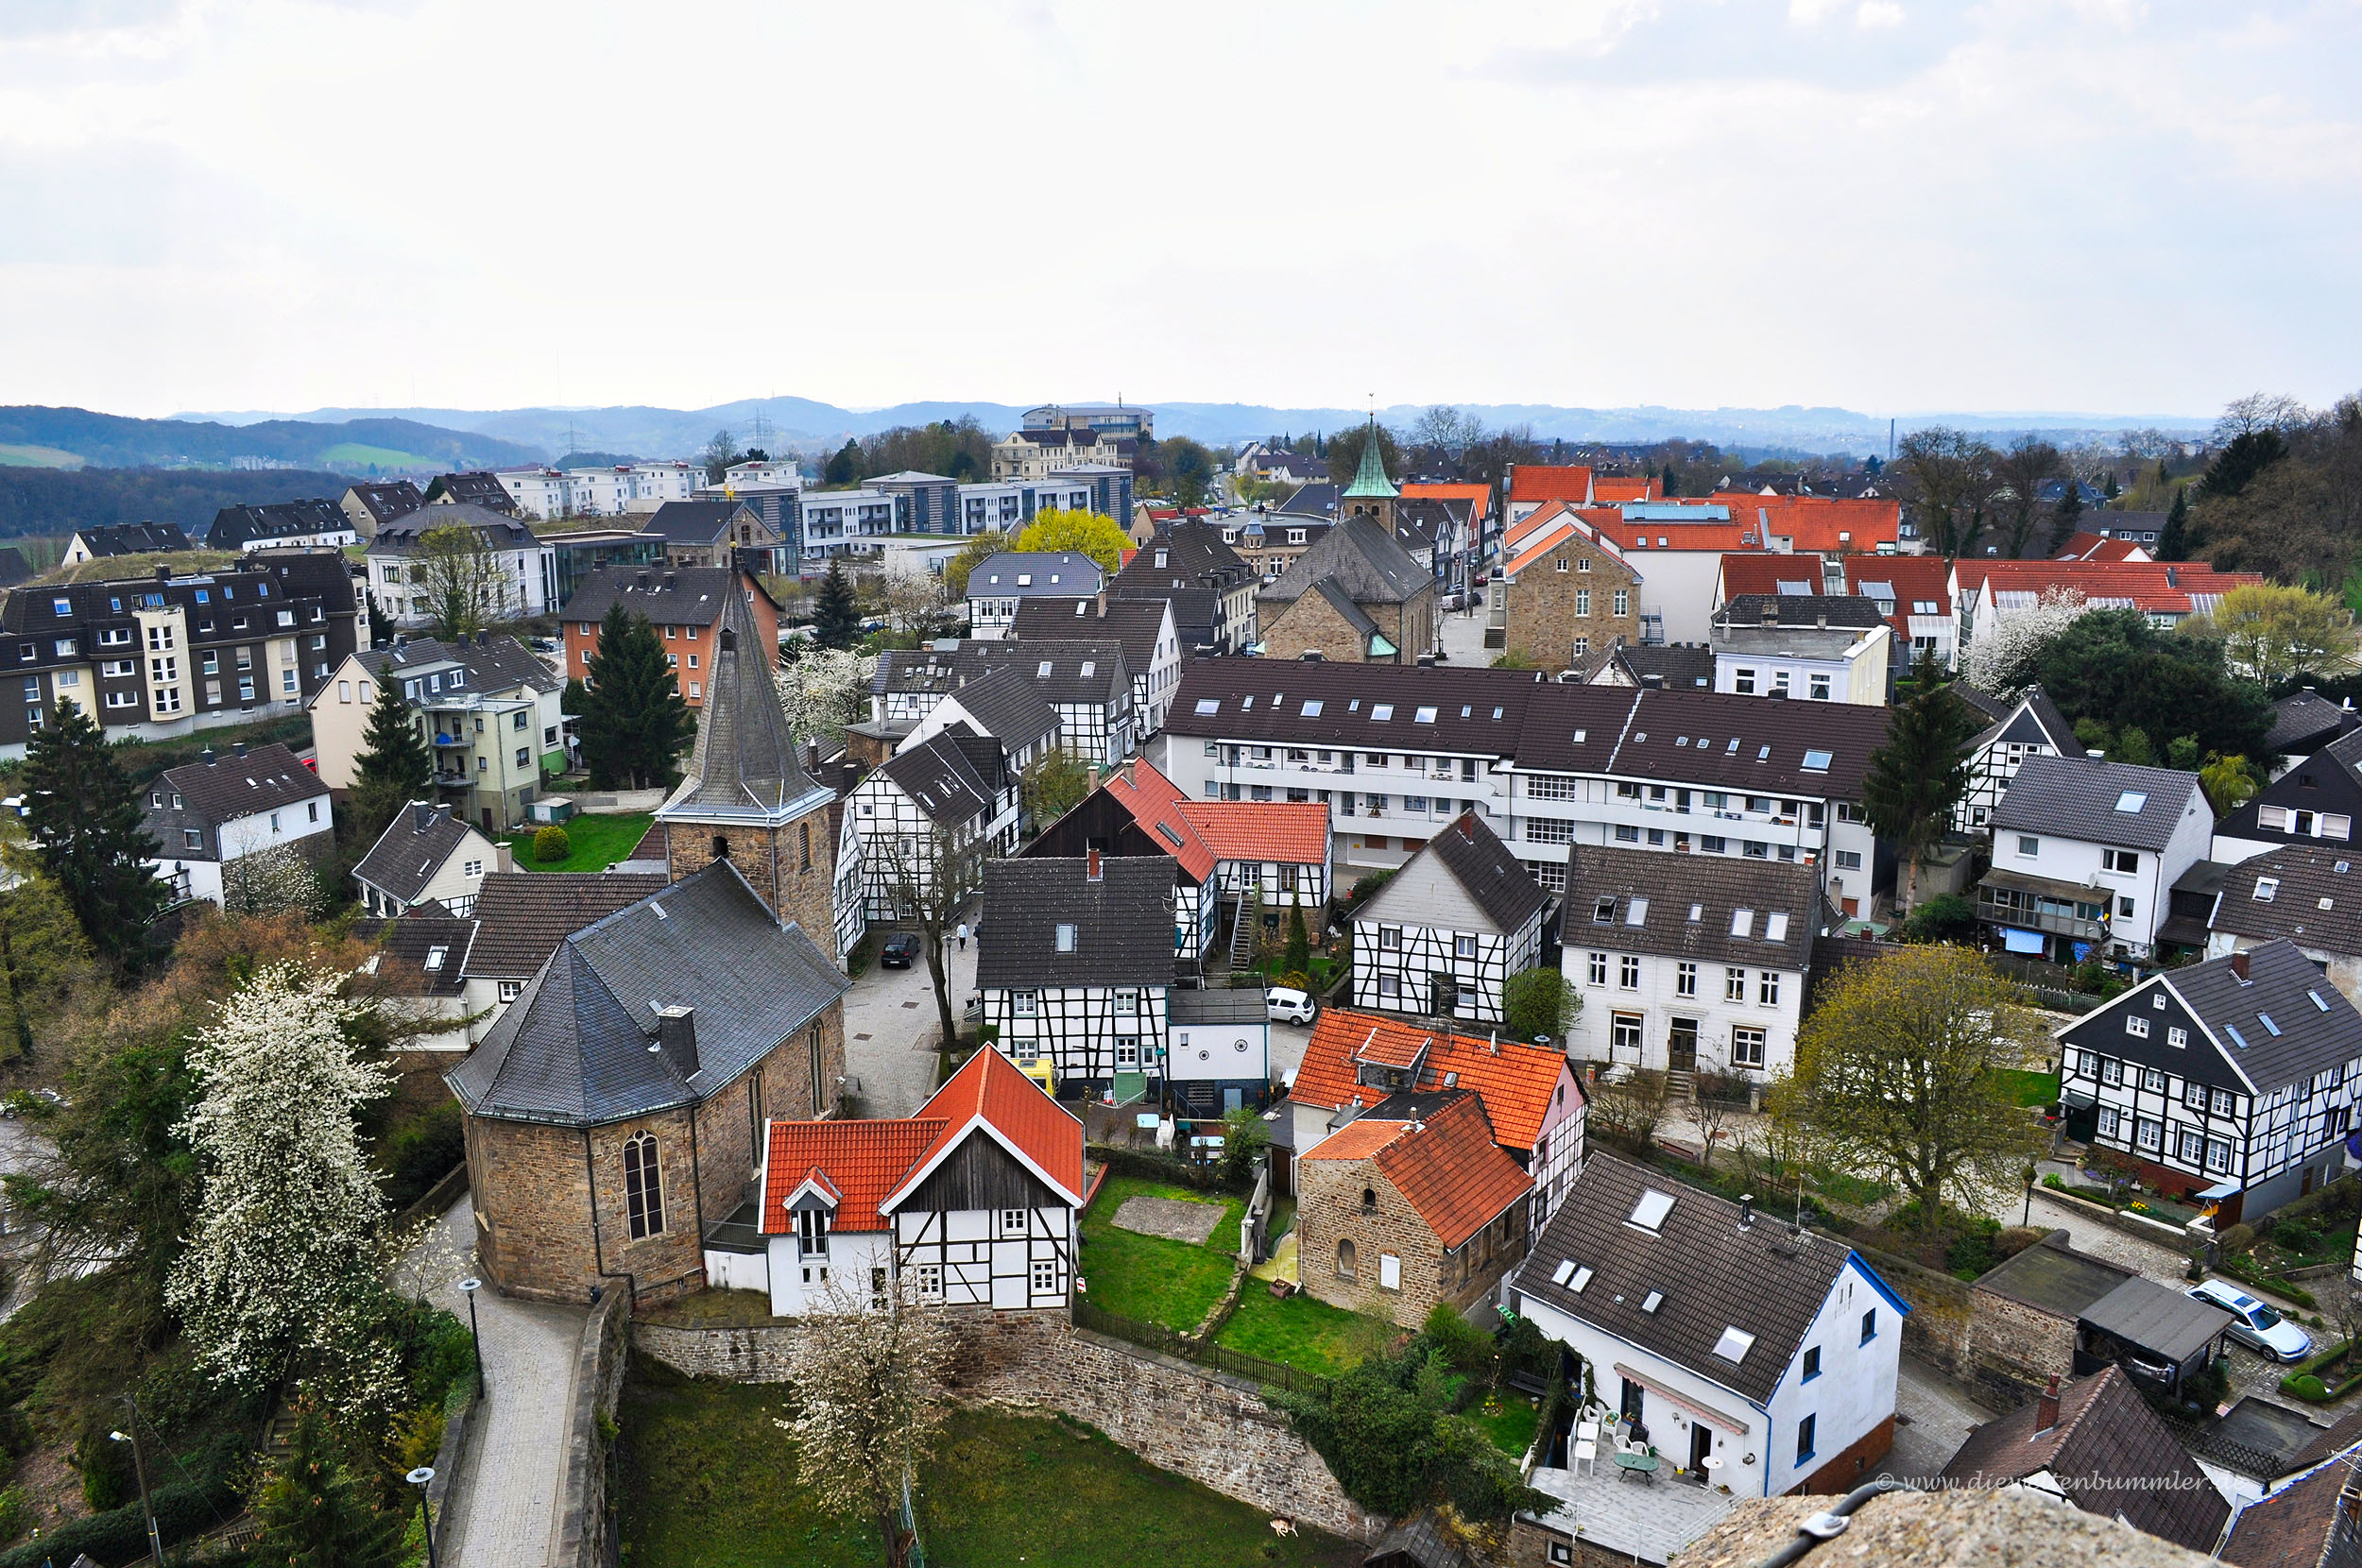 Hattingen-Blankenstein